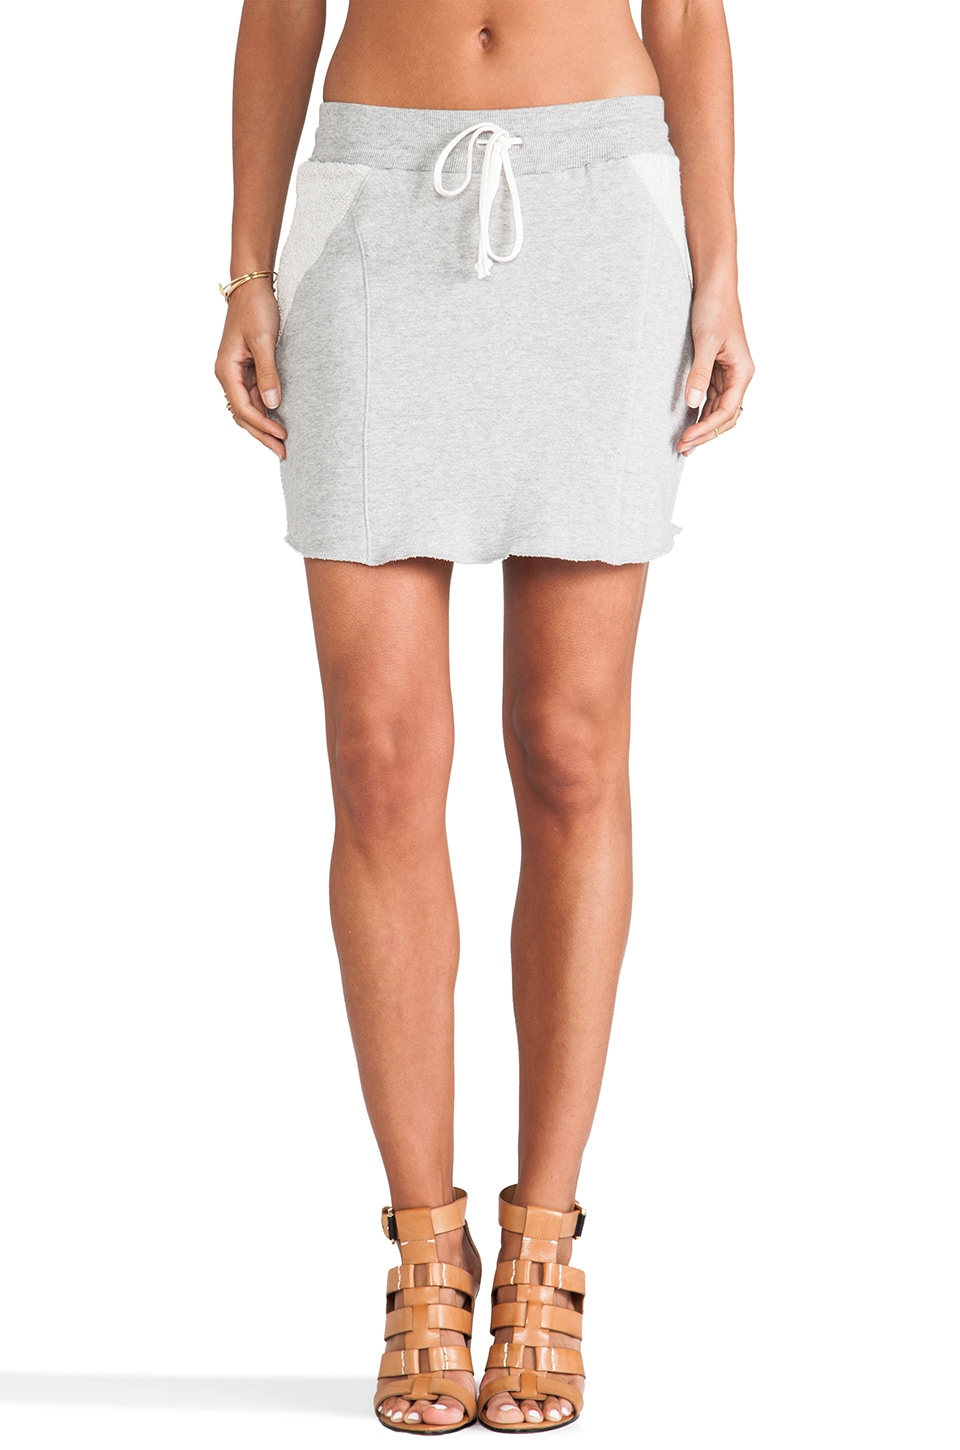 C&C California French Terry Skirt in Heather Grey